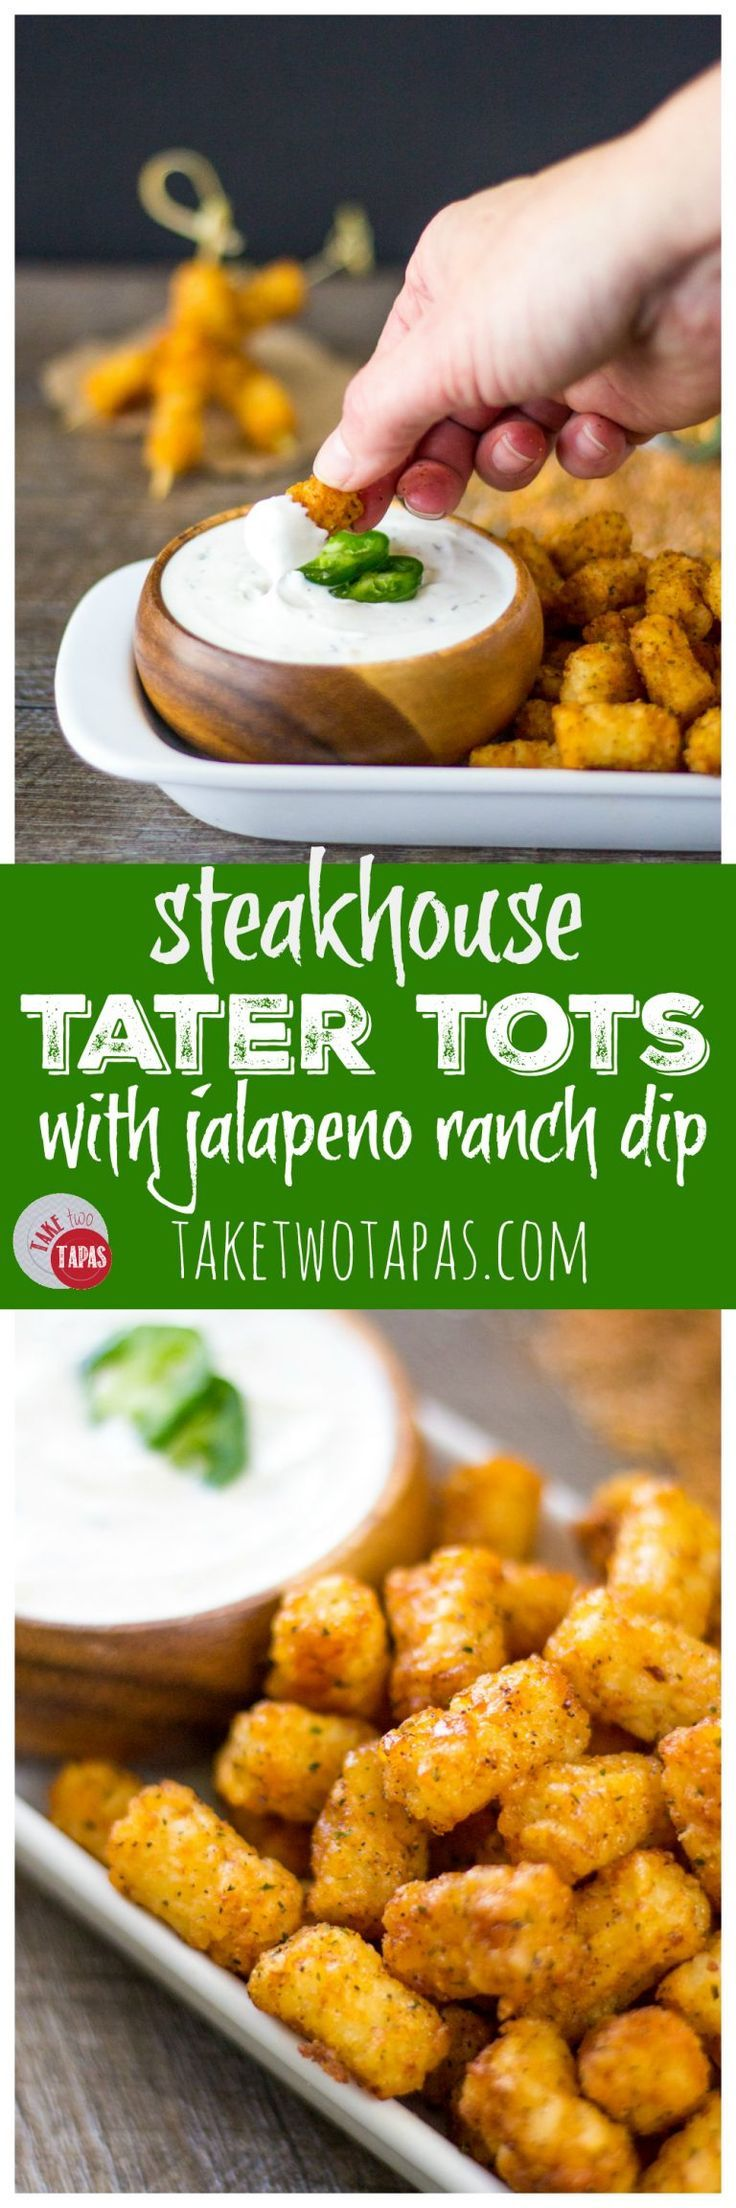 Warm and spicy steakhouse tater tots have the right amount of kick with my homemade steak seasoning. Take them for a cool dip in jalapeno ranch for an awesome snack! Perfect for the big game or any tater tot craving! Steakhouse Tater Tots with Jalapeno Ra